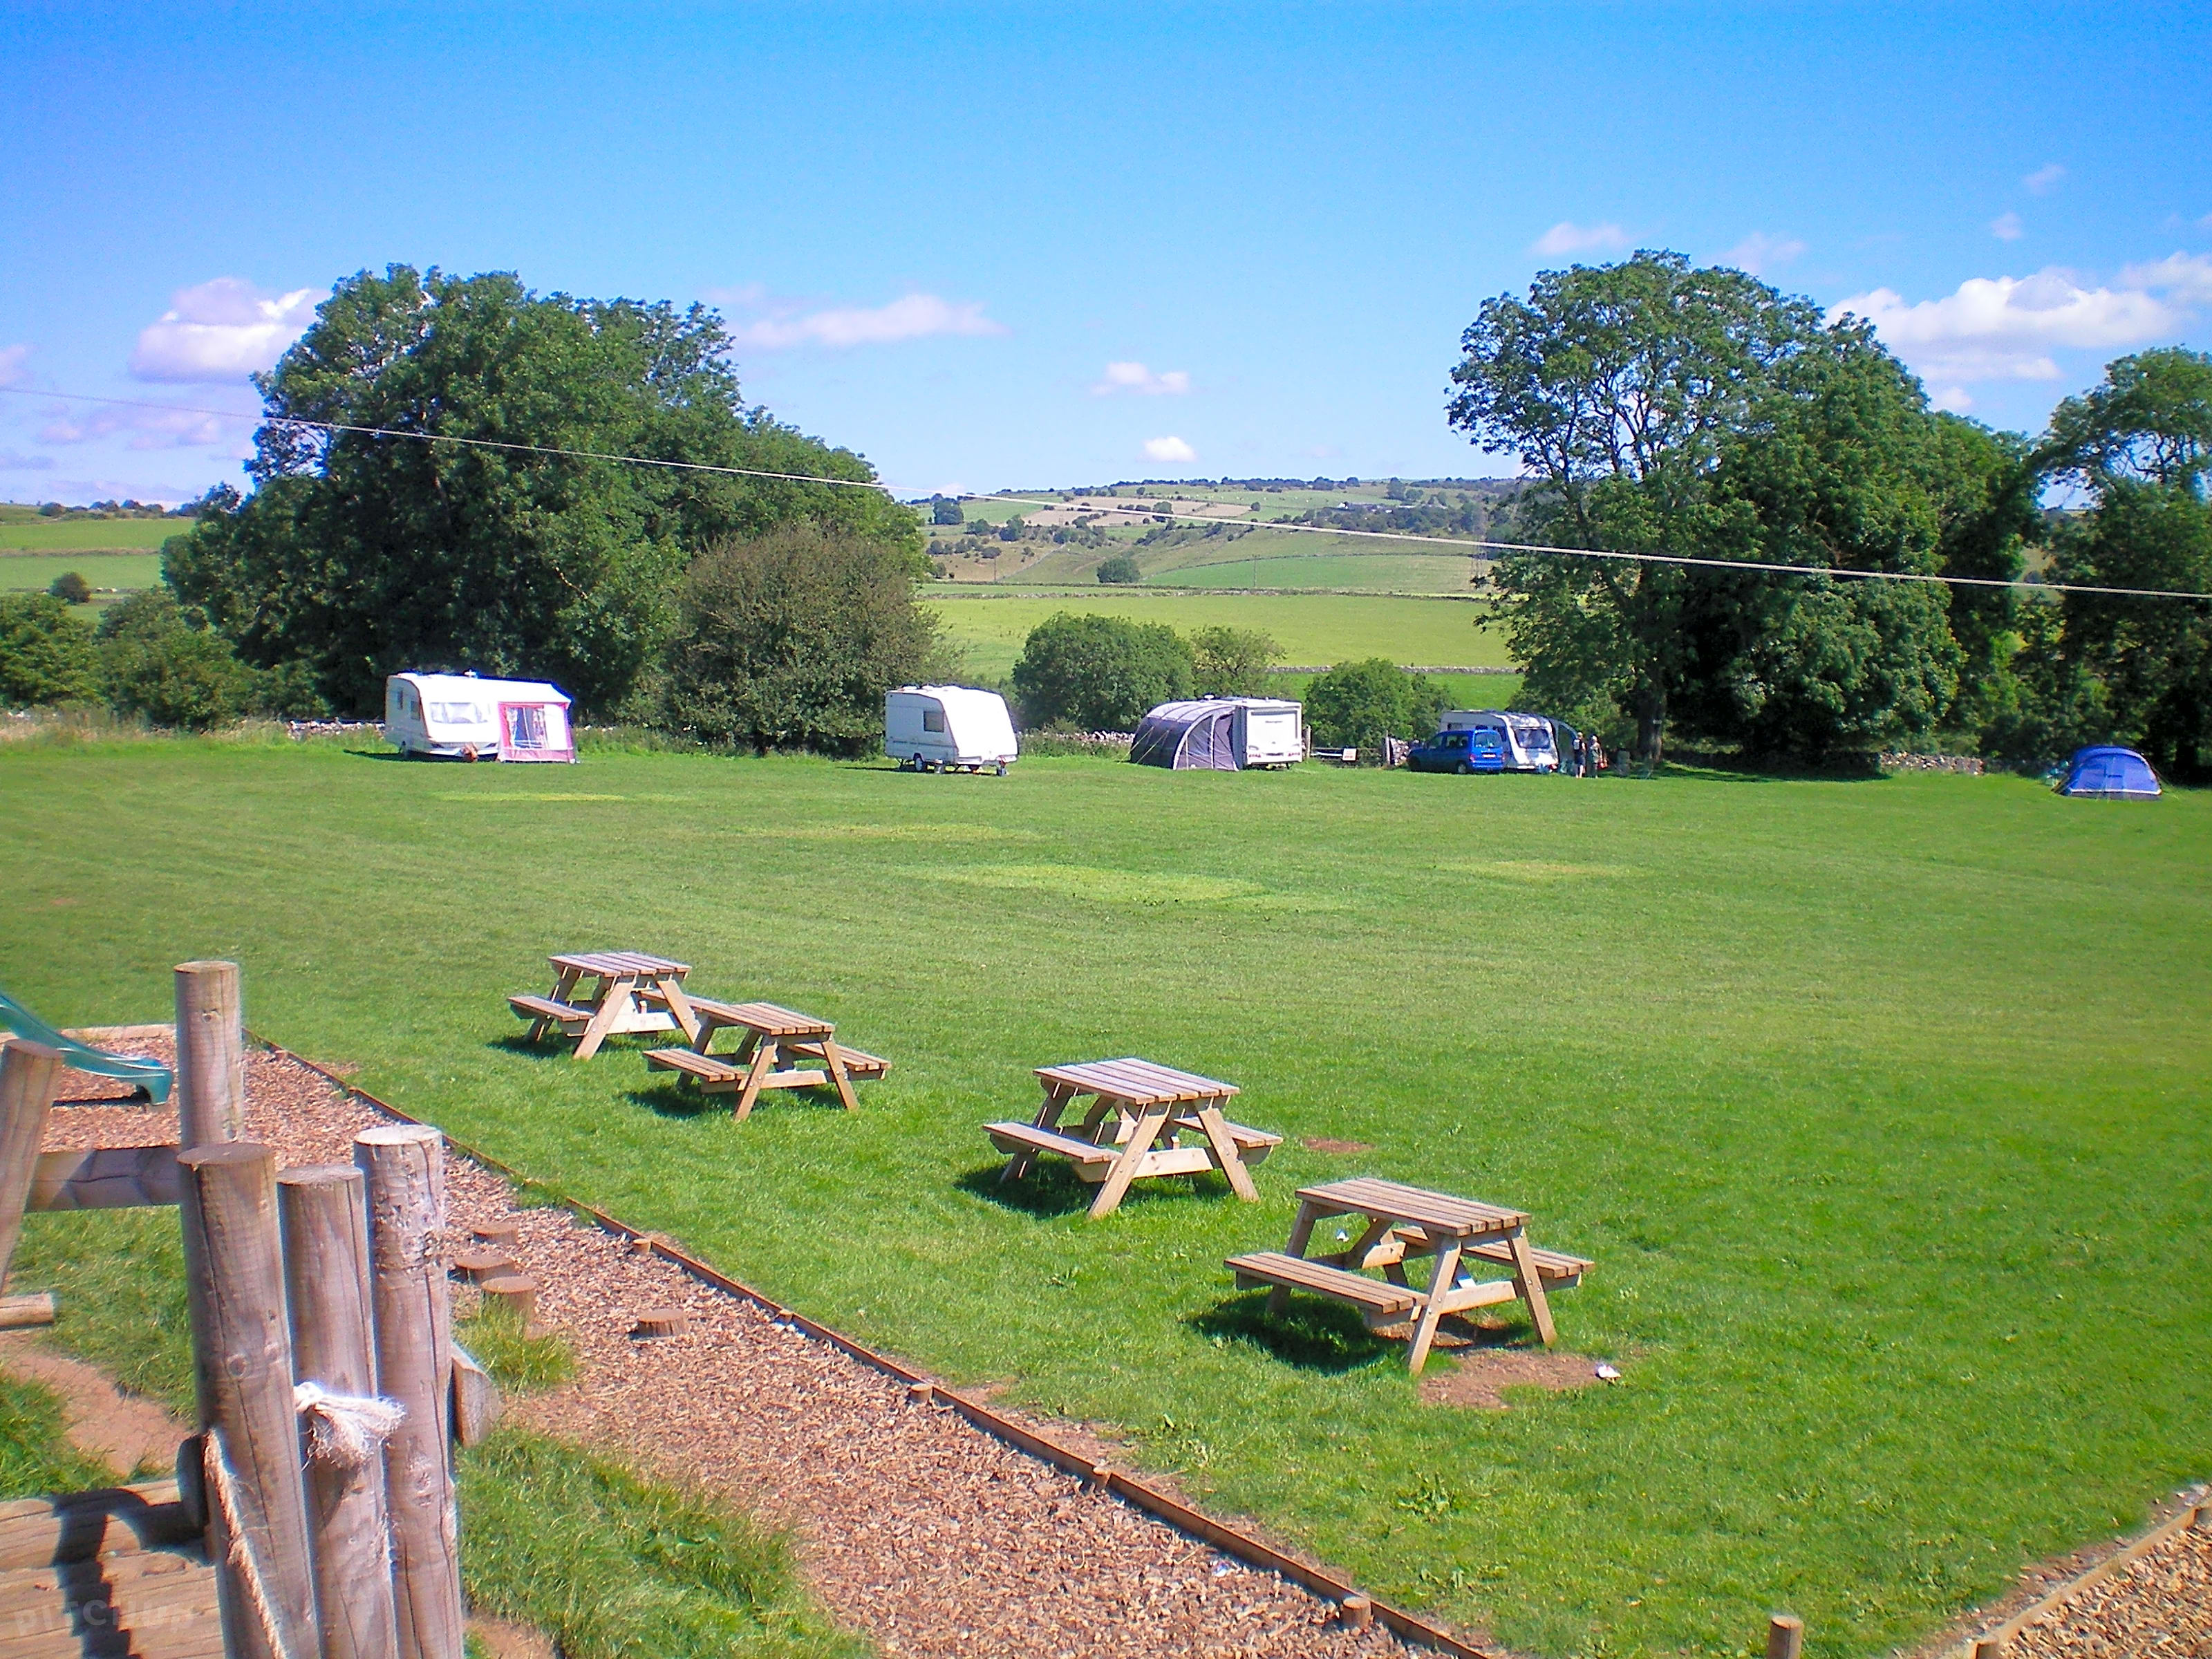 Middlehills Farm Campsite, Matlock - Updated 2019 prices - Pitchup®